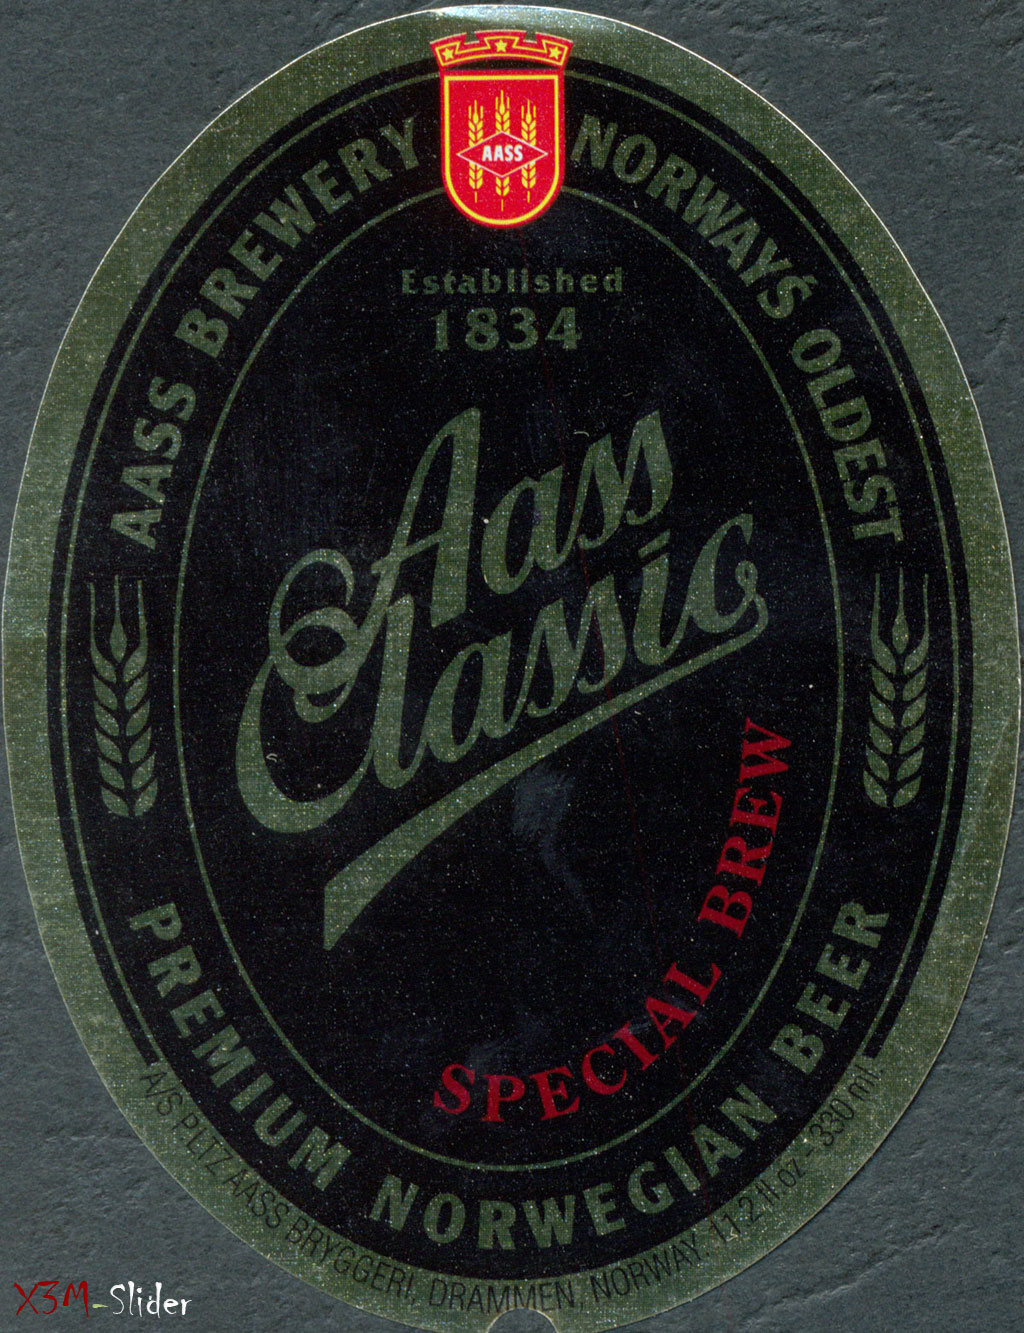 AASS - Classic - Special Brew